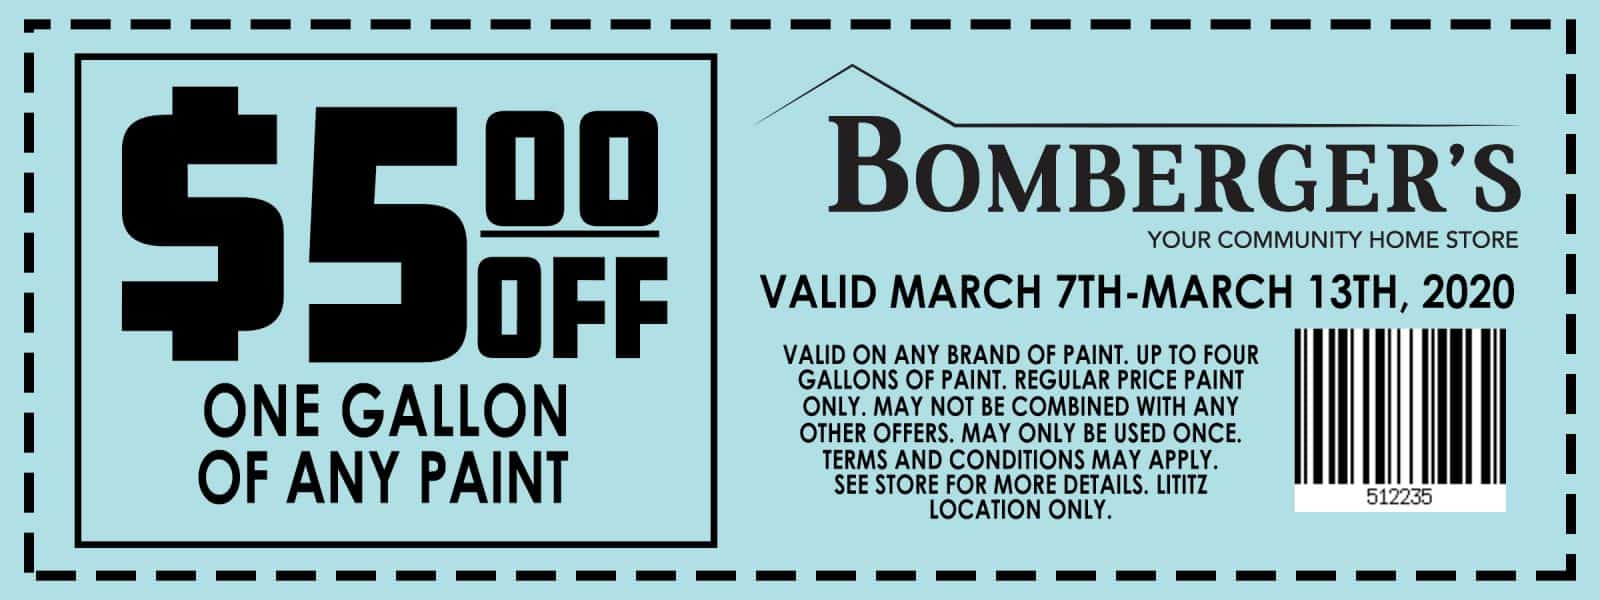 Paint Coupon (1)